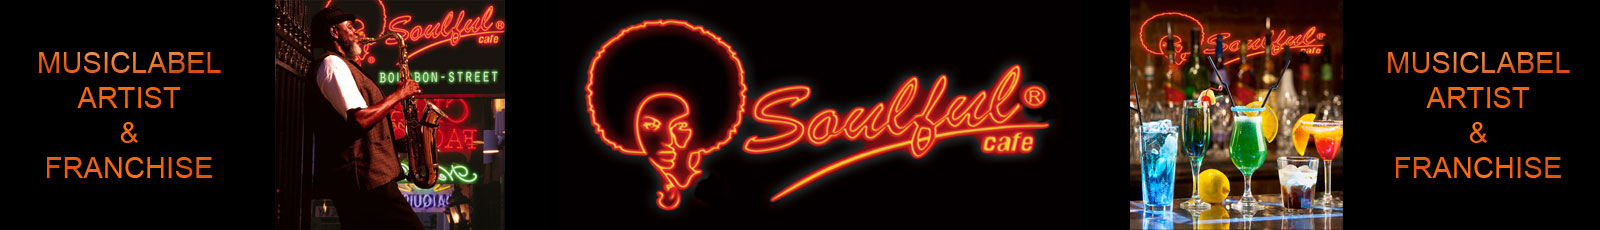 Soulful Cafe artist & musiclabel